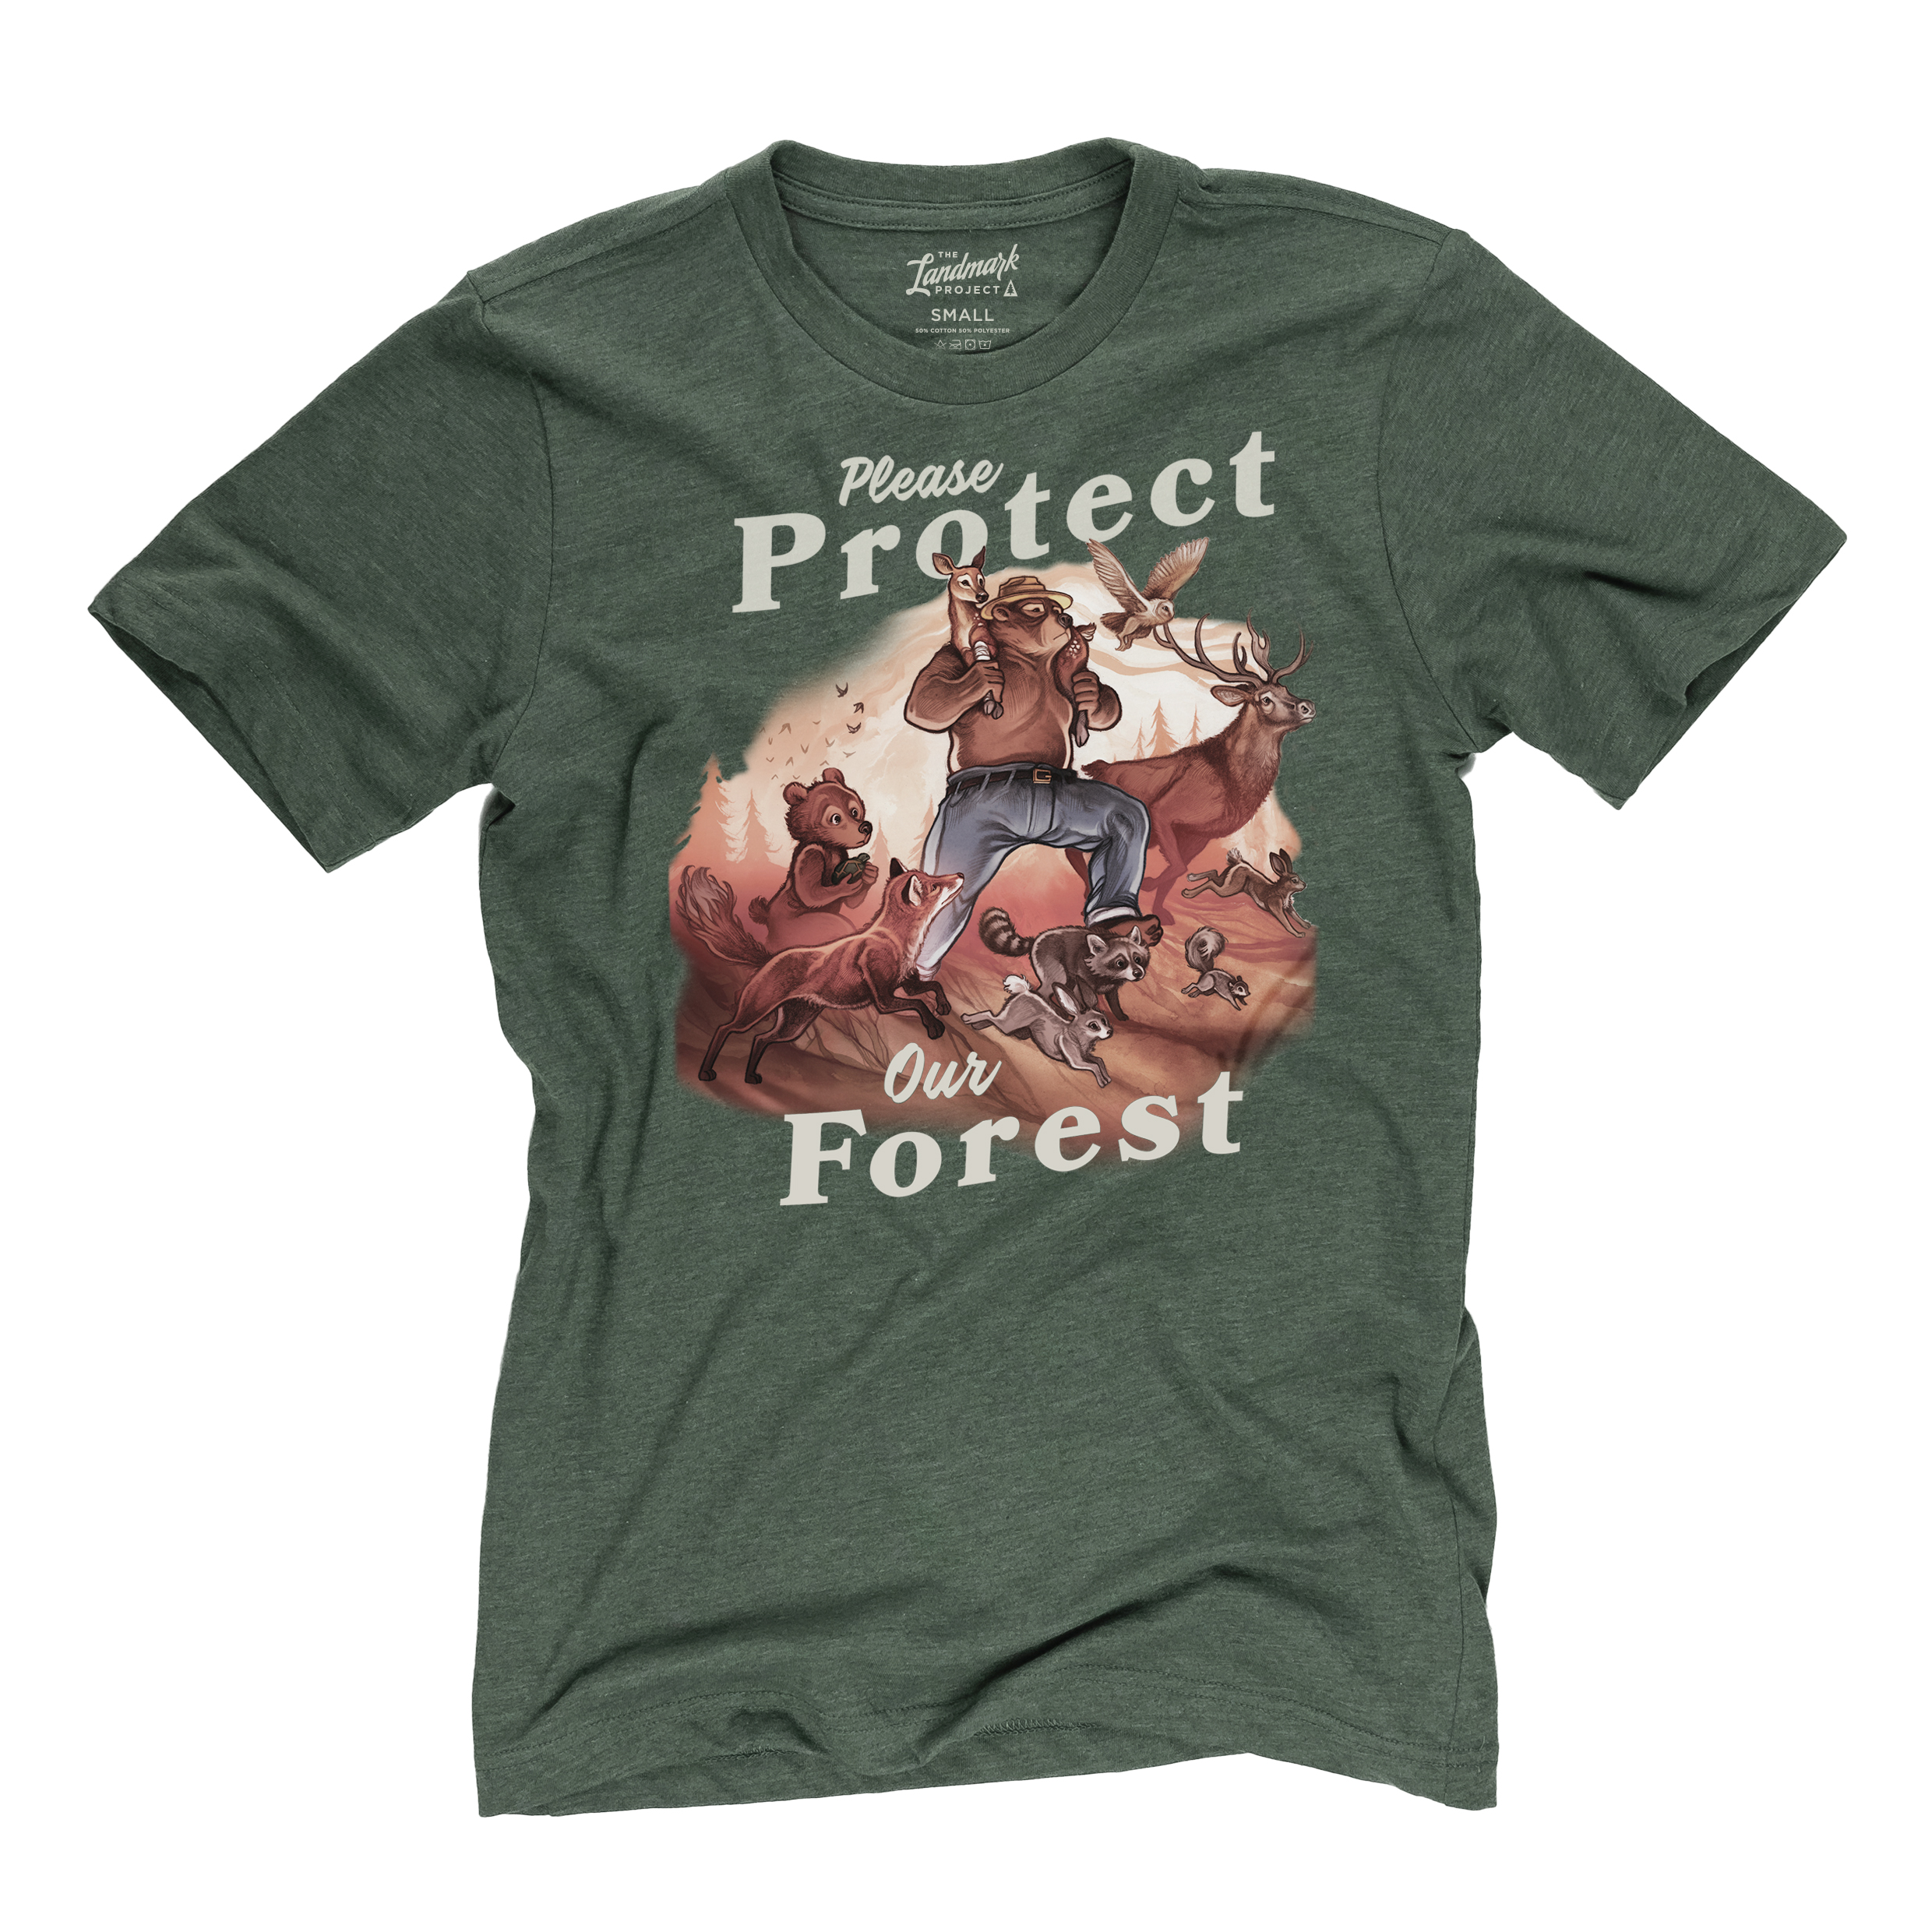 1521490001-protect-our-forest-teee.jpg